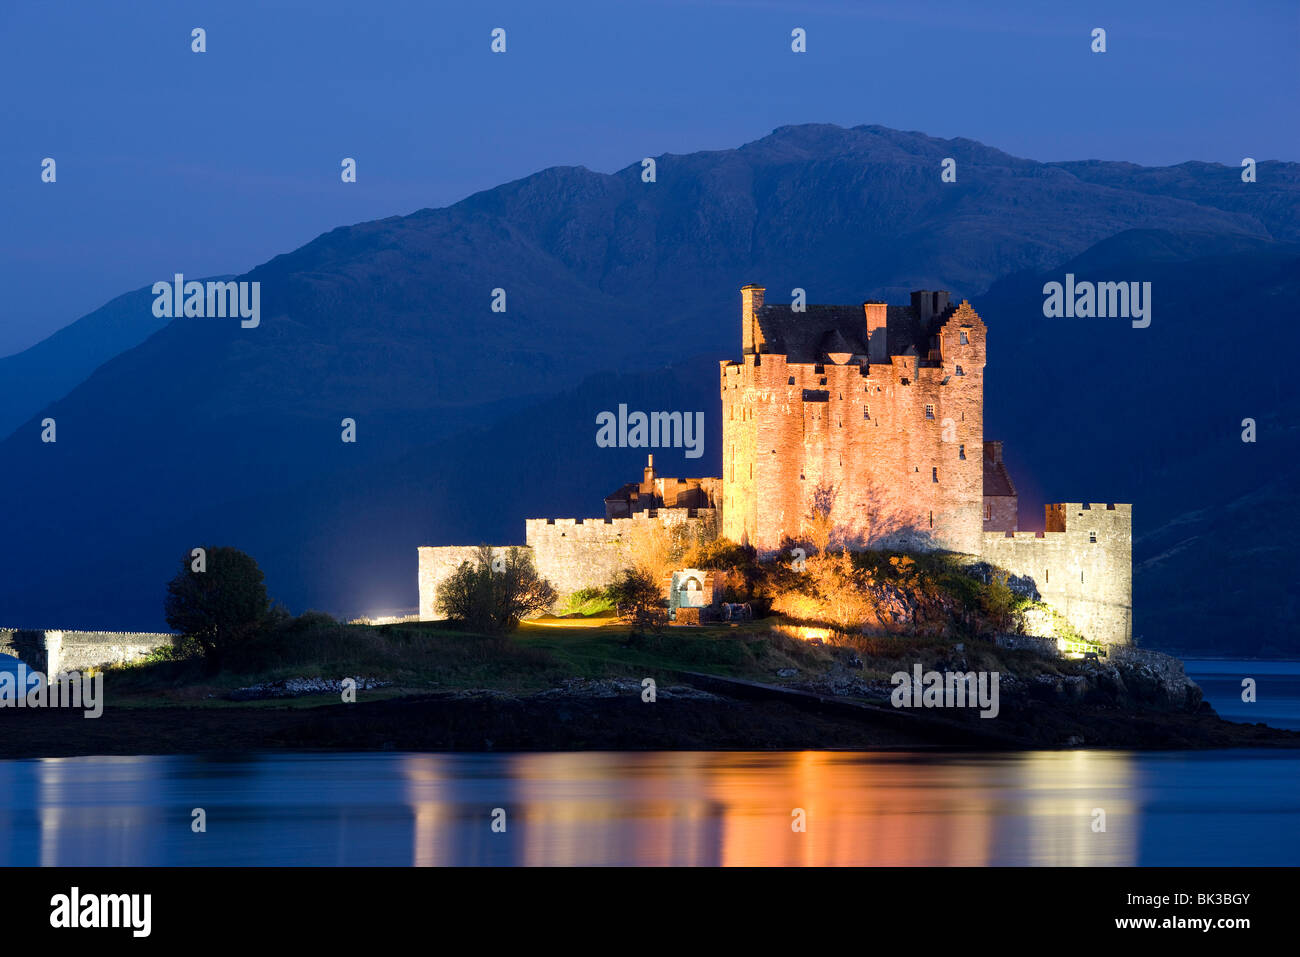 Eilean Donan Castle floodlit at night on Loch Duich, near Kyle of Lochalsh, Highland, Scotland, United Kingdom, - Stock Image